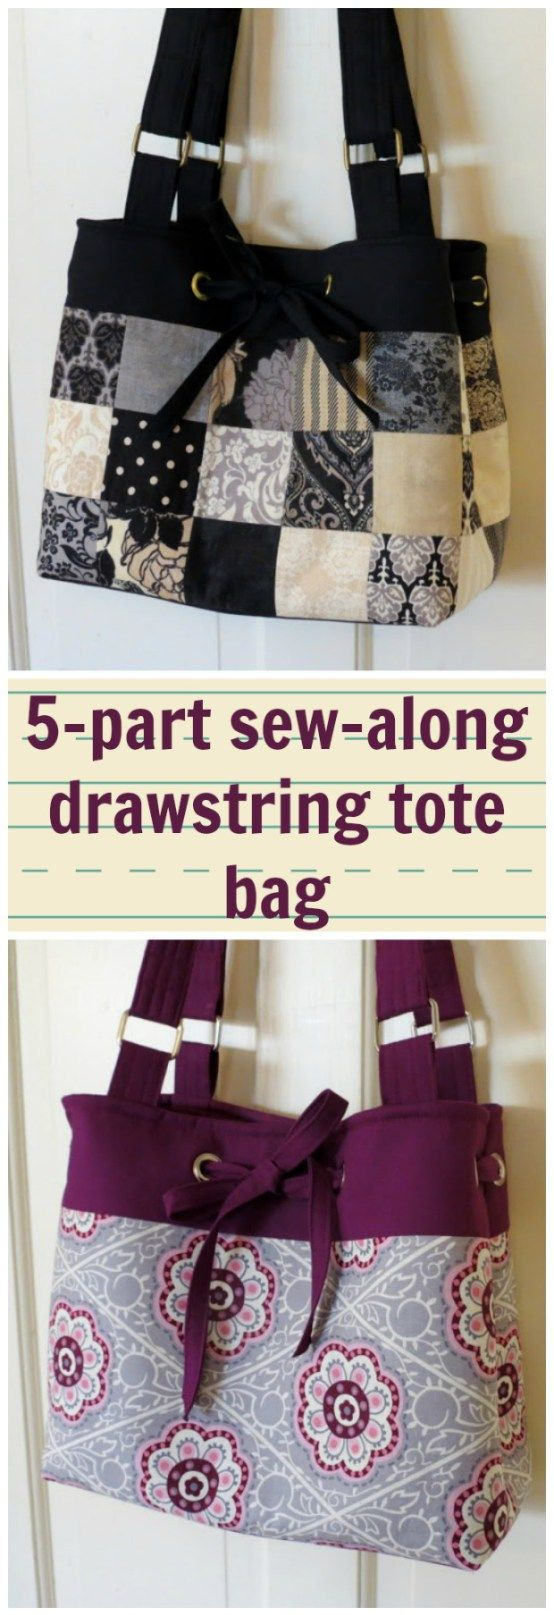 Full 5-part sew-along tutorial for how to make this drawstring purse